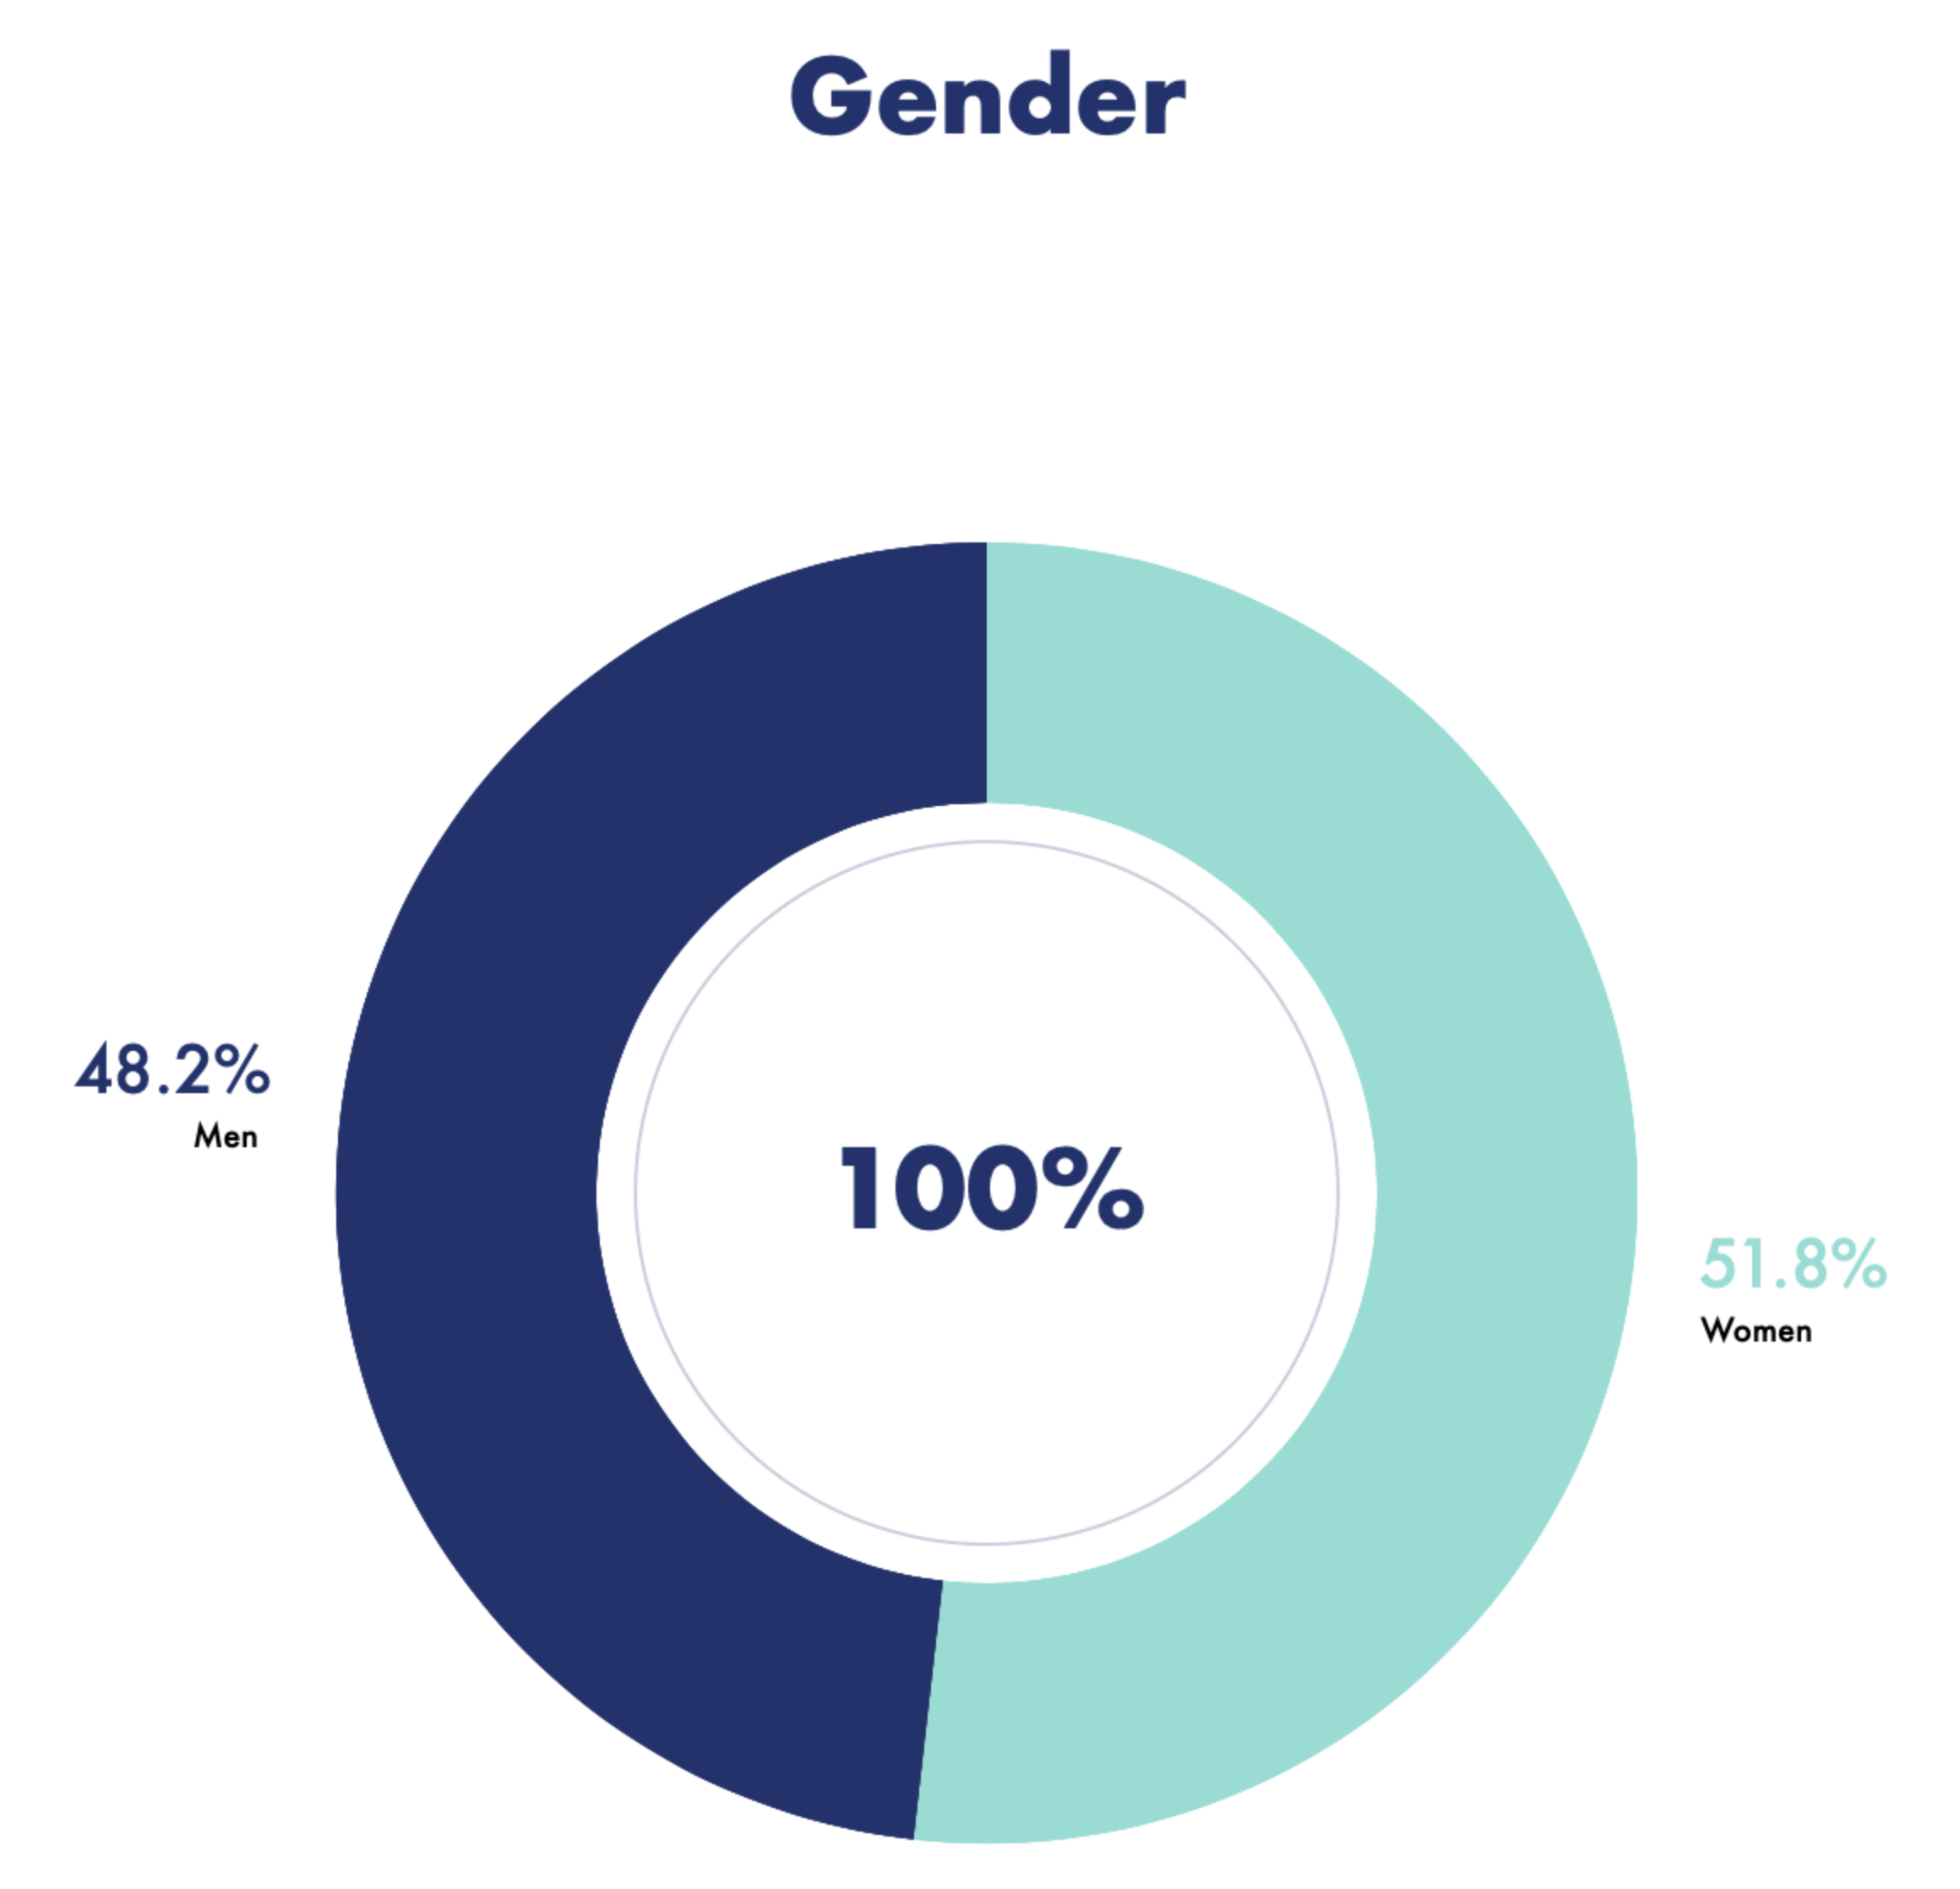 COVID Impact on Employment Survey - Gender